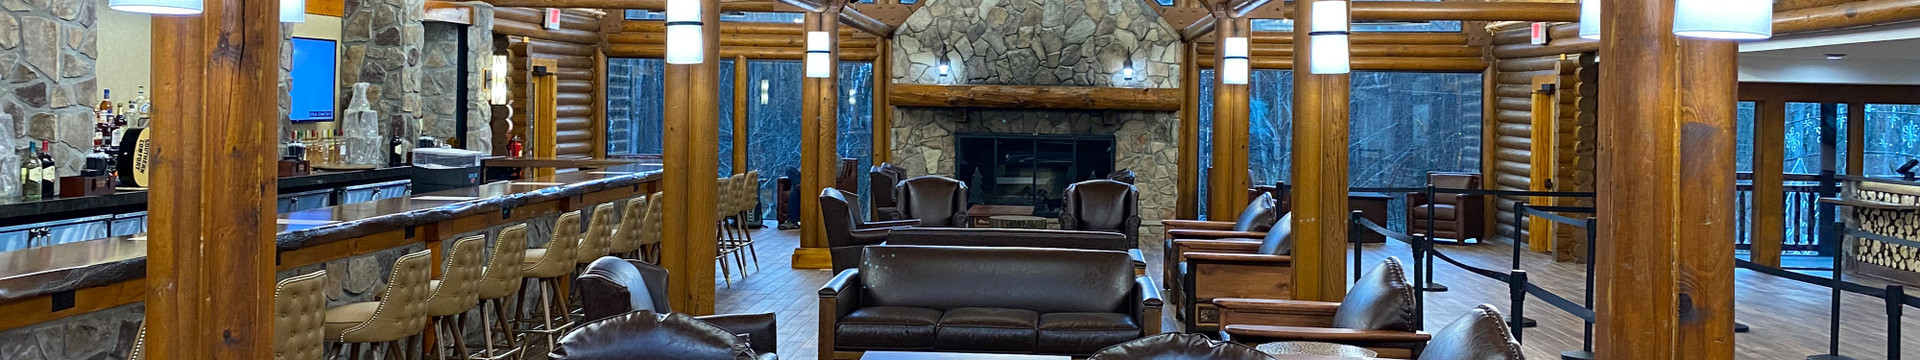 Southern Comfort Lobby - Westgate Smoky Mountain